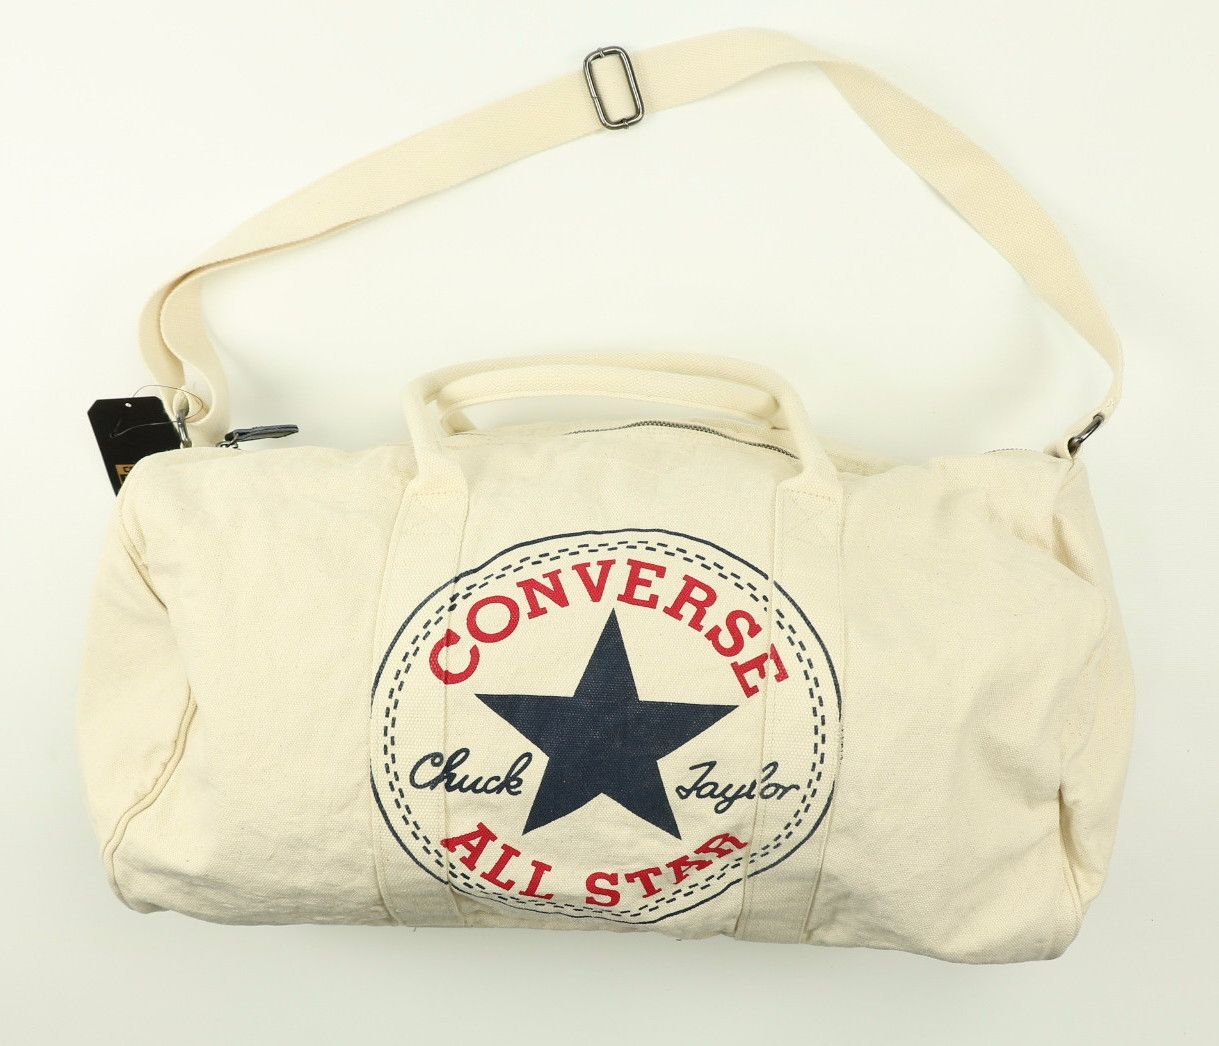 converse all star bag white